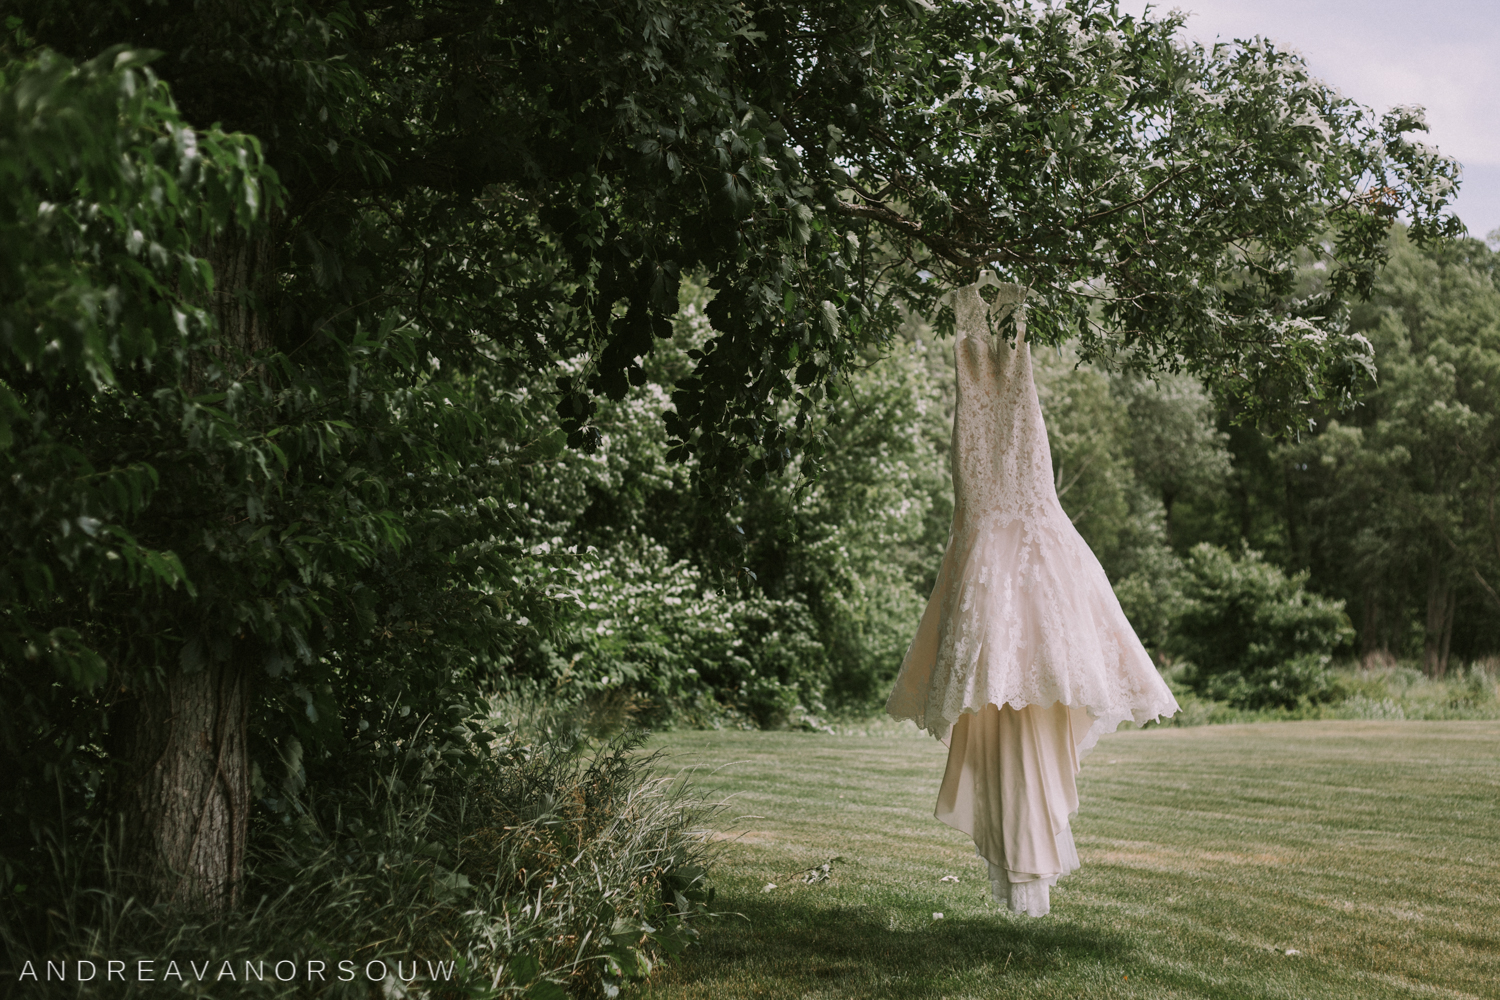 dress_bride_lace_detail_outdoors_tree_kirkbrae_country_club_bride_groom_wedding_rhode_island_lincoln_natural_photography_connecticut_new_england_photographer.jpg